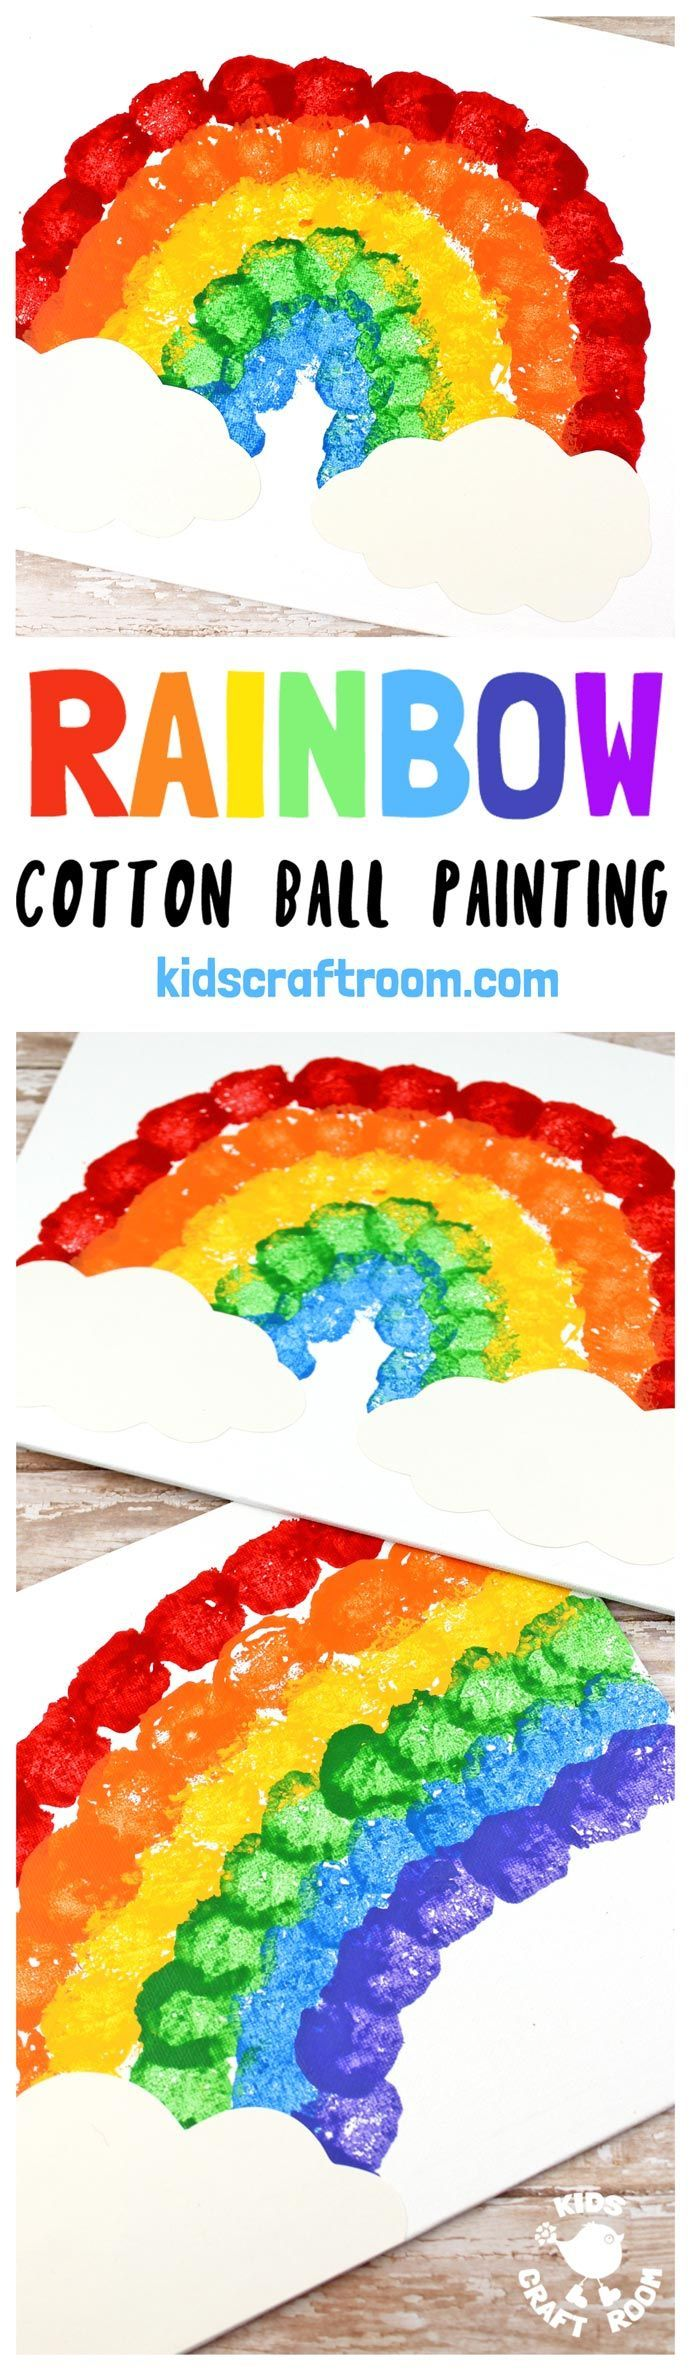 RAINBOW COTTON BALL PAINTING is lots of fun, looks amazing and develops kids motor skills and hand-eye co-ordination. Painting with cotton balls is exciting for kids and a great way to broaden their painting experiences away from just traditional brushes. #rainbow #kidsart #kidspaintingideas #stpatricksday  #stpaddys #rainbowcrafts #kidspainting #springcrafts #springcraftsforkids #kidsactivities #kidscrafts #kidscraftroom #rainbows #cottonballpainting #painting #kids via @KidsCraftRoom